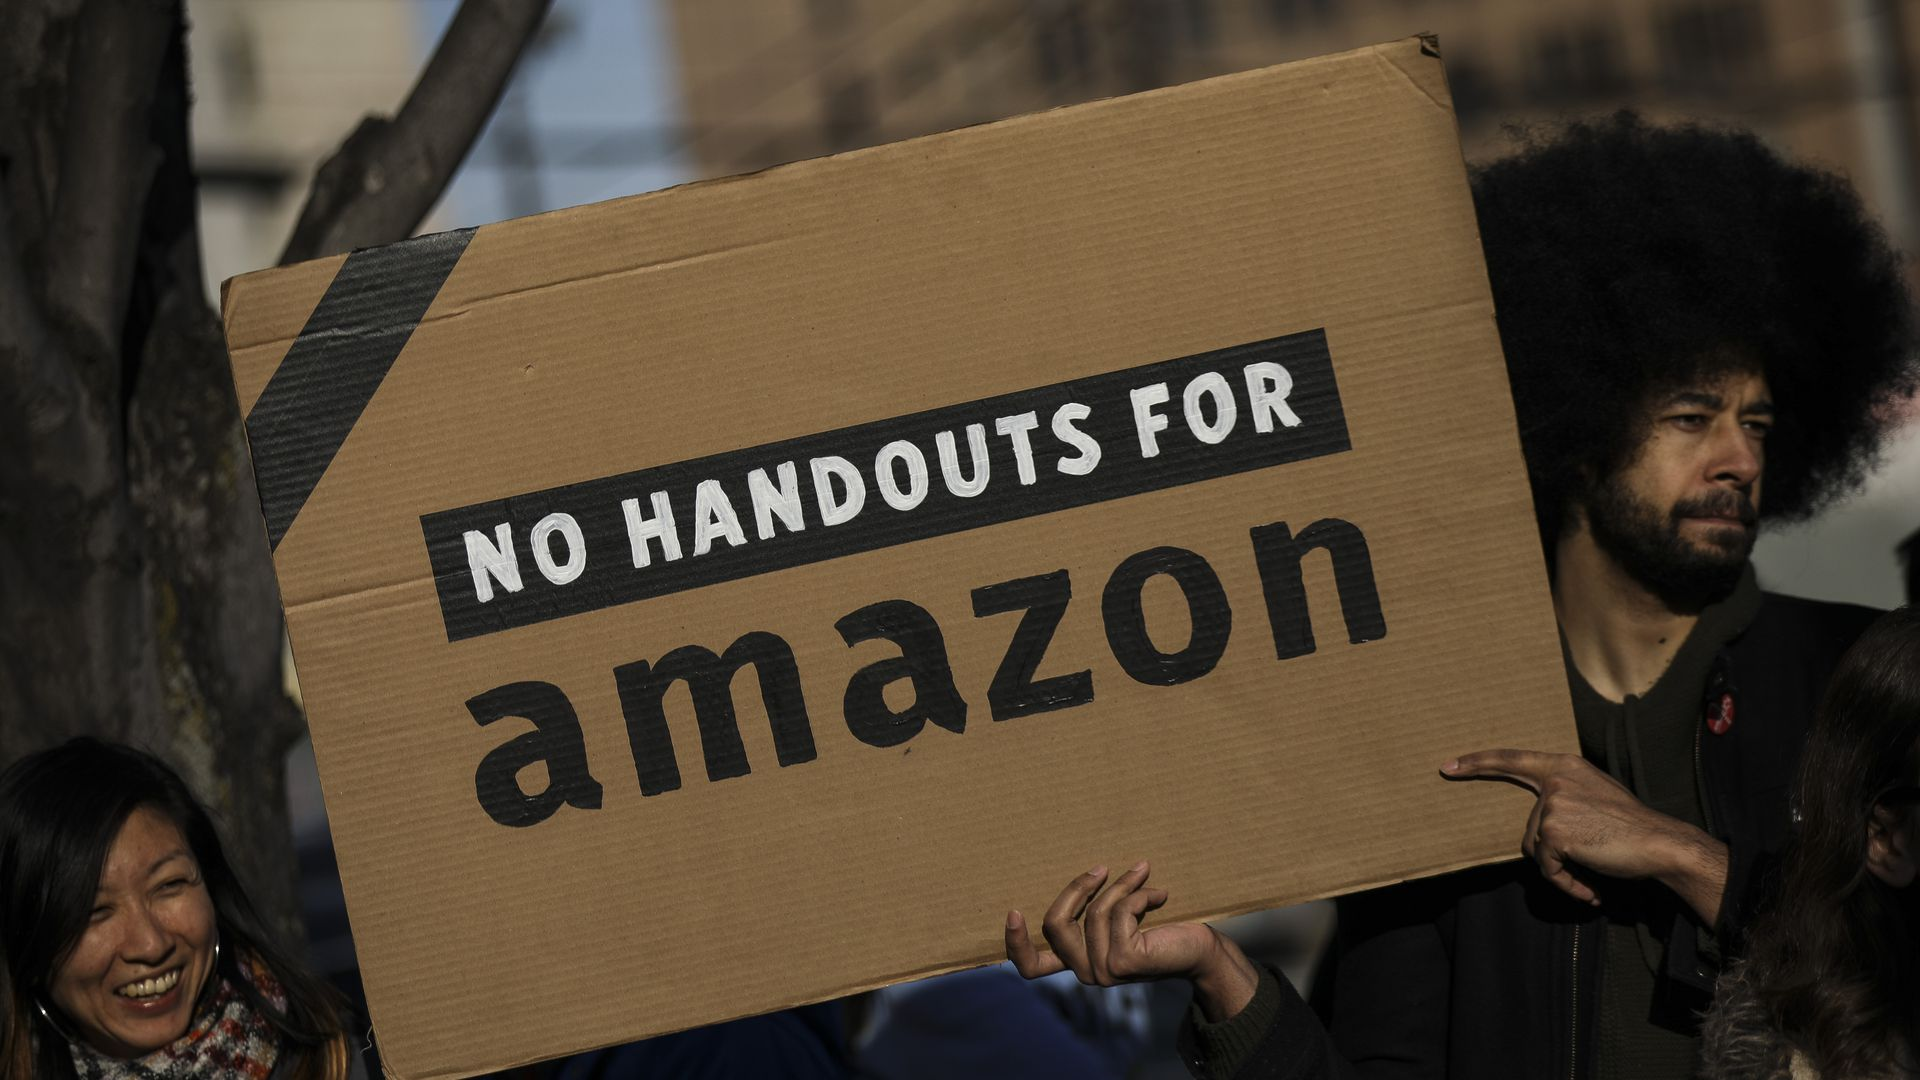 Protestor carries a sign saying no handouts for amazon